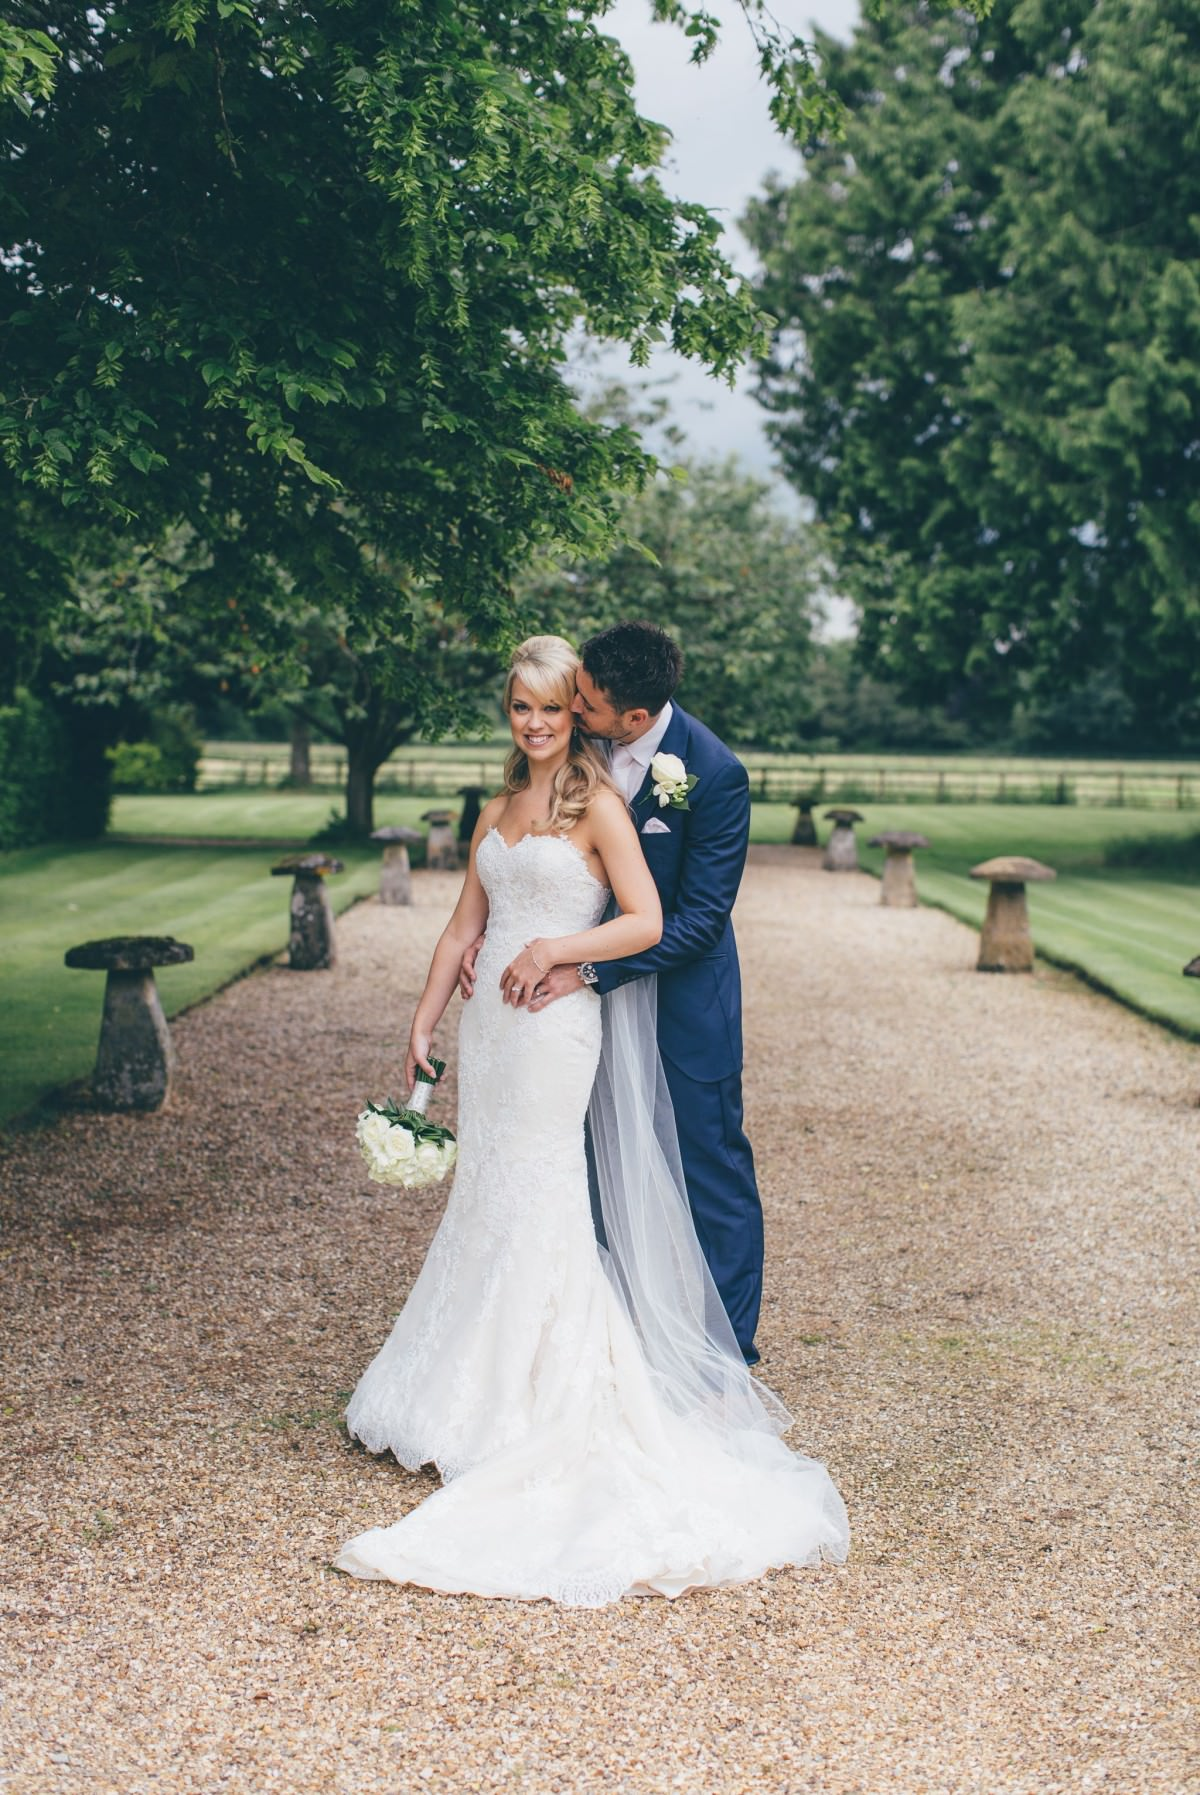 welsh_wedding_photographer_rachel_lambert_photography_lower_slaughter_manor_house_cotswolds_harriet_dean_ 32